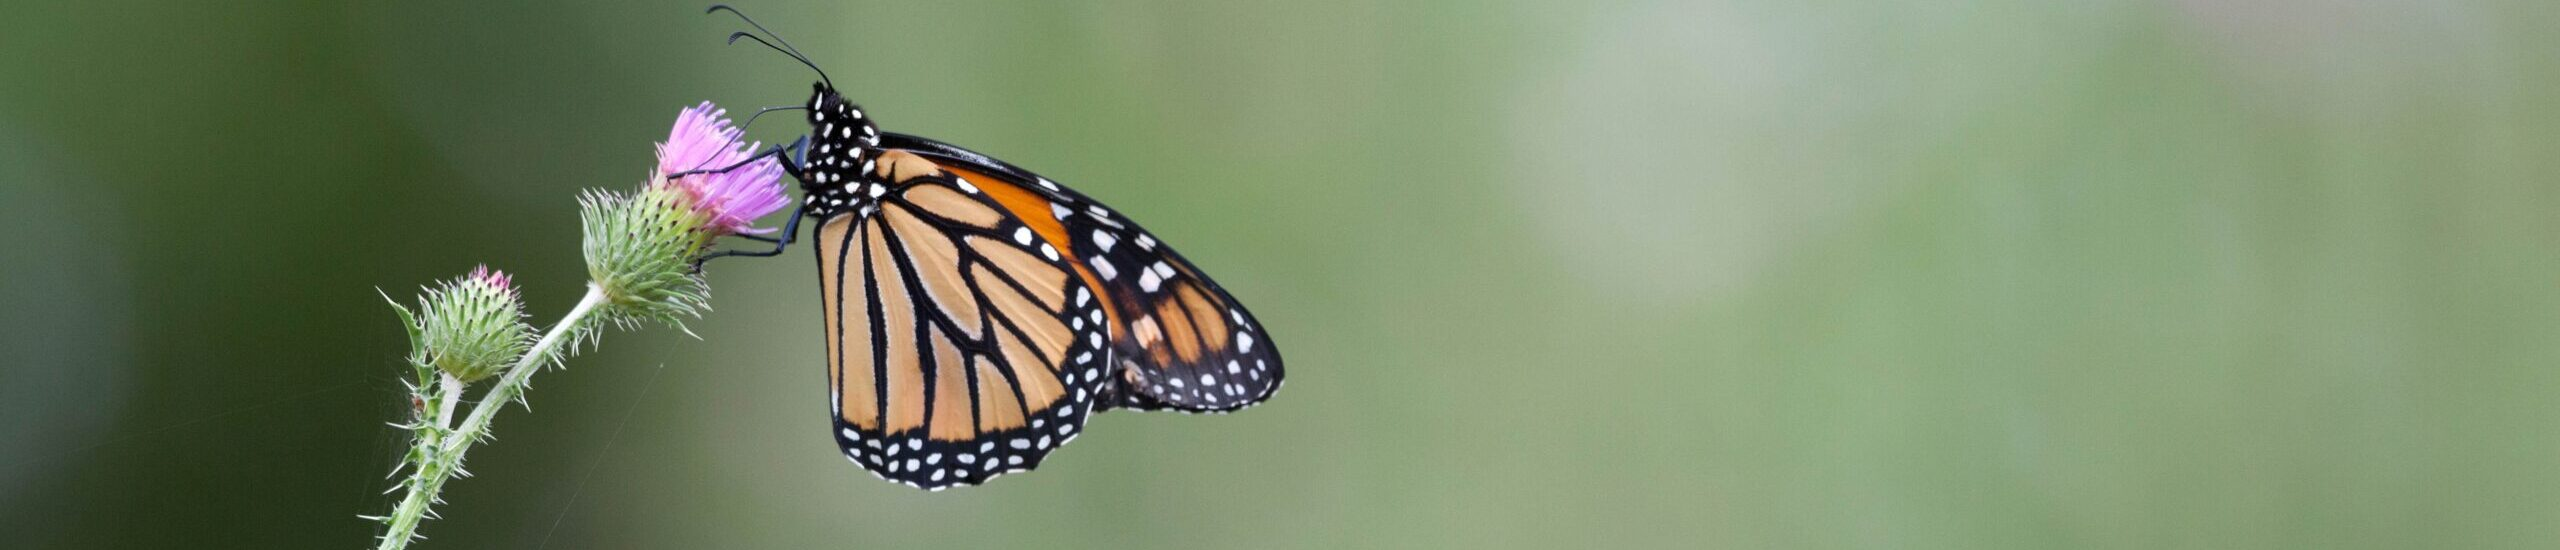 TIRN Calls On Congress to Provide $100 Million Annually for Conservation of Monarch Butterflies